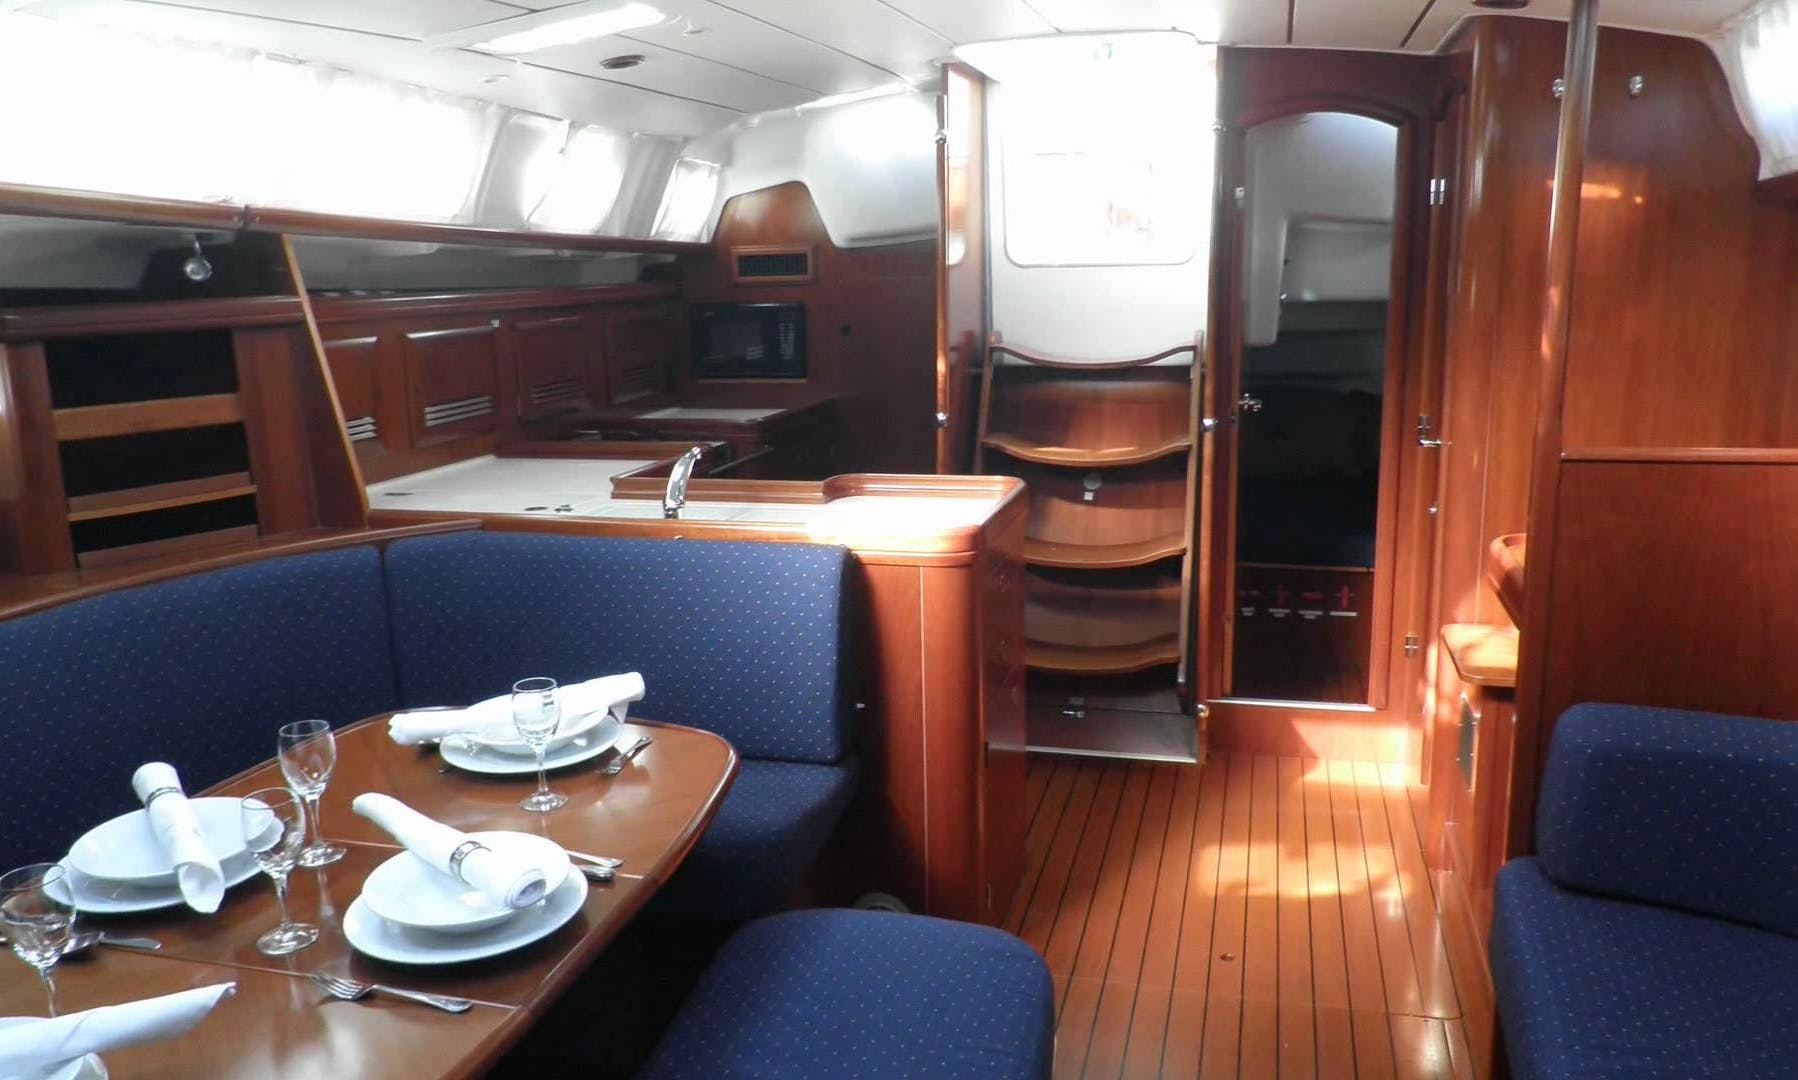 14' Sailing Sloop Charter in Marsala, Sicilia for up to 8 people